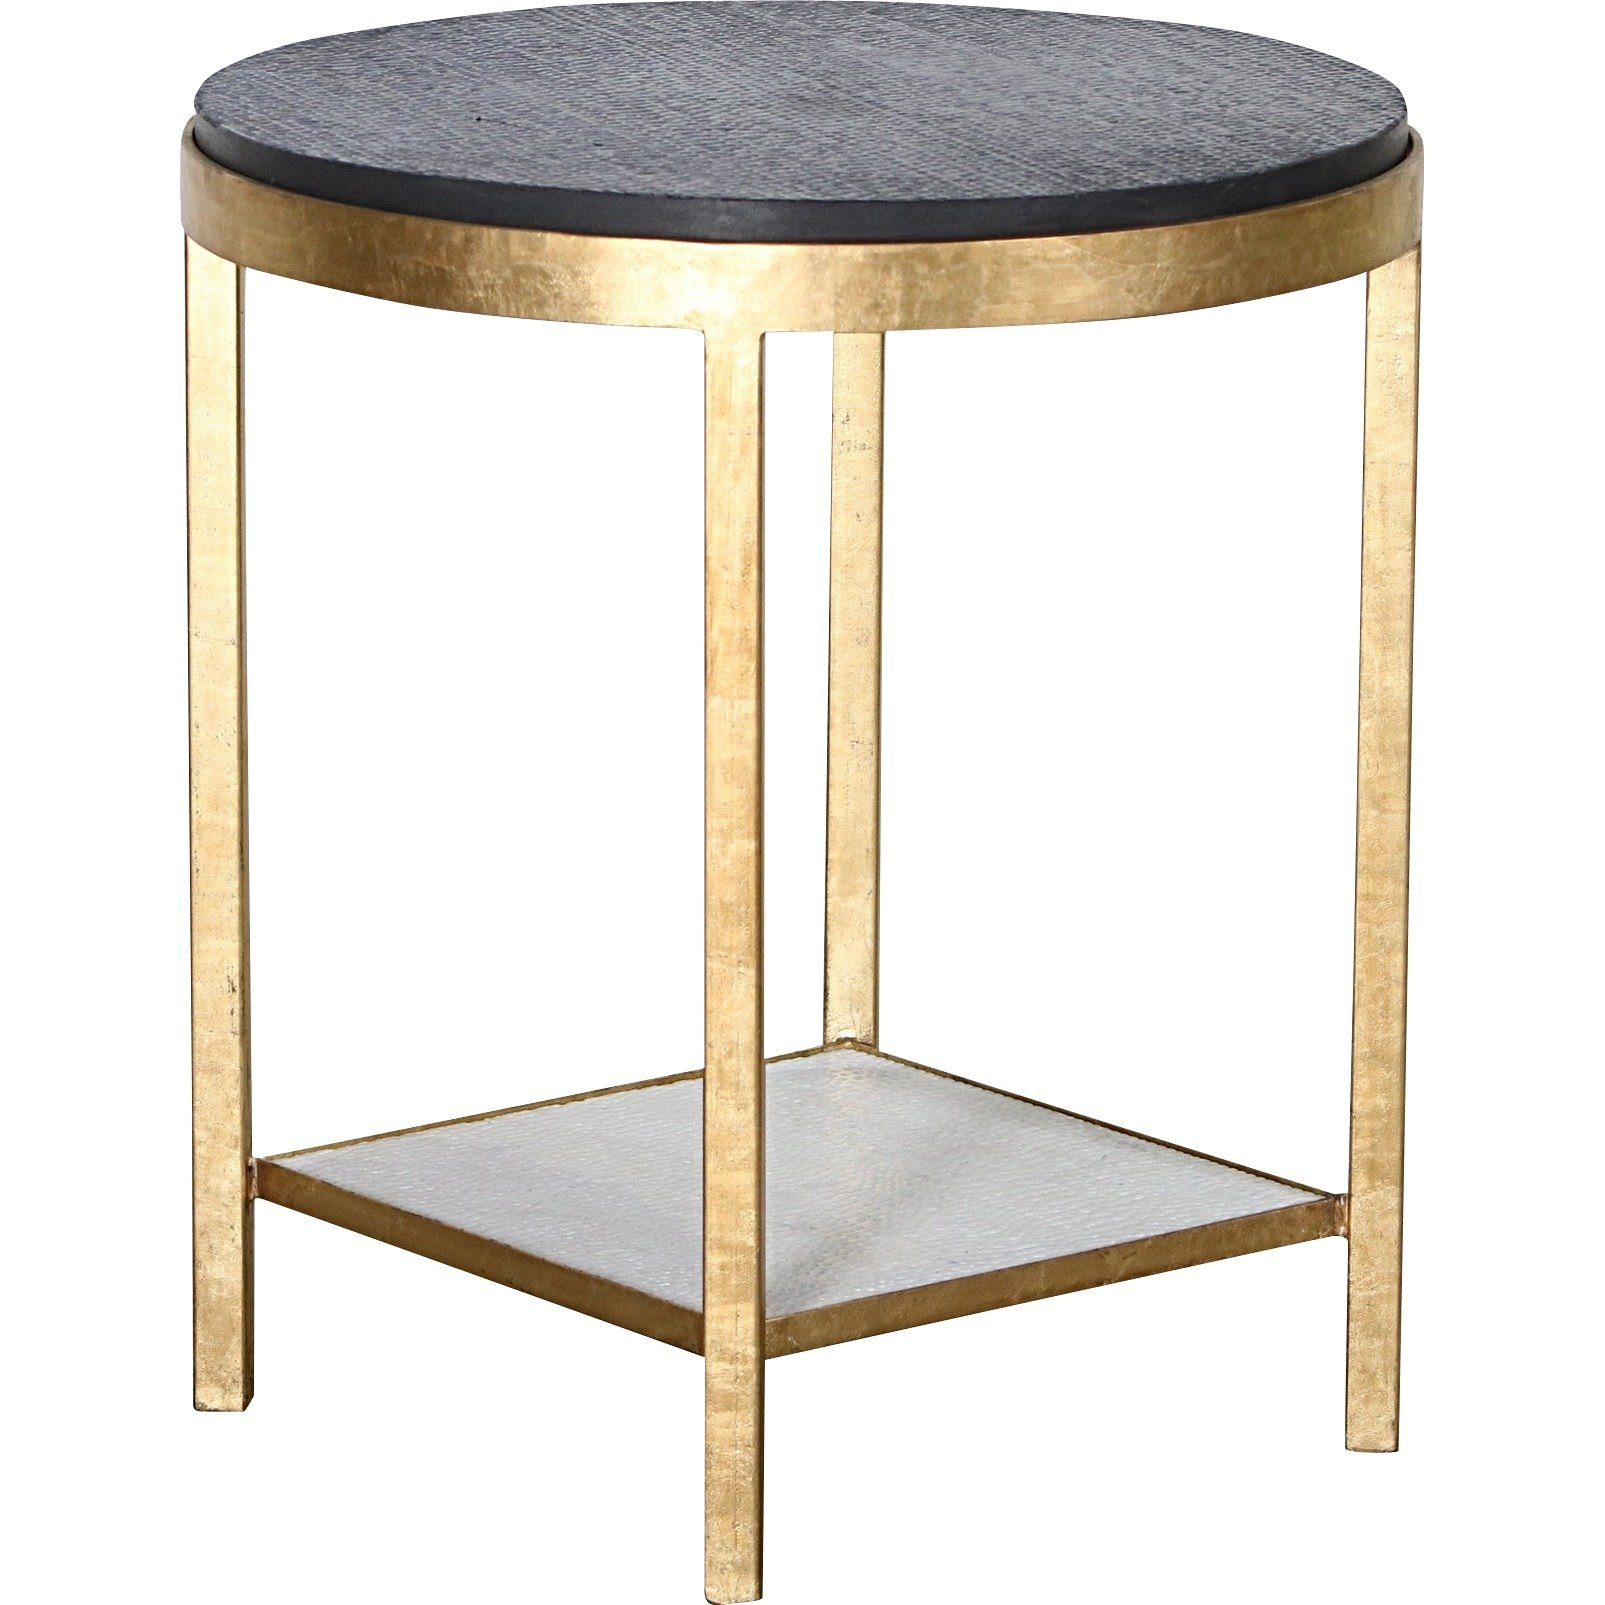 accent tables erdos mila square table casa lawn furniture high top and bar stools blue round tablecloth black pedestal end ikea side with drawer barn door glass coffee gold base